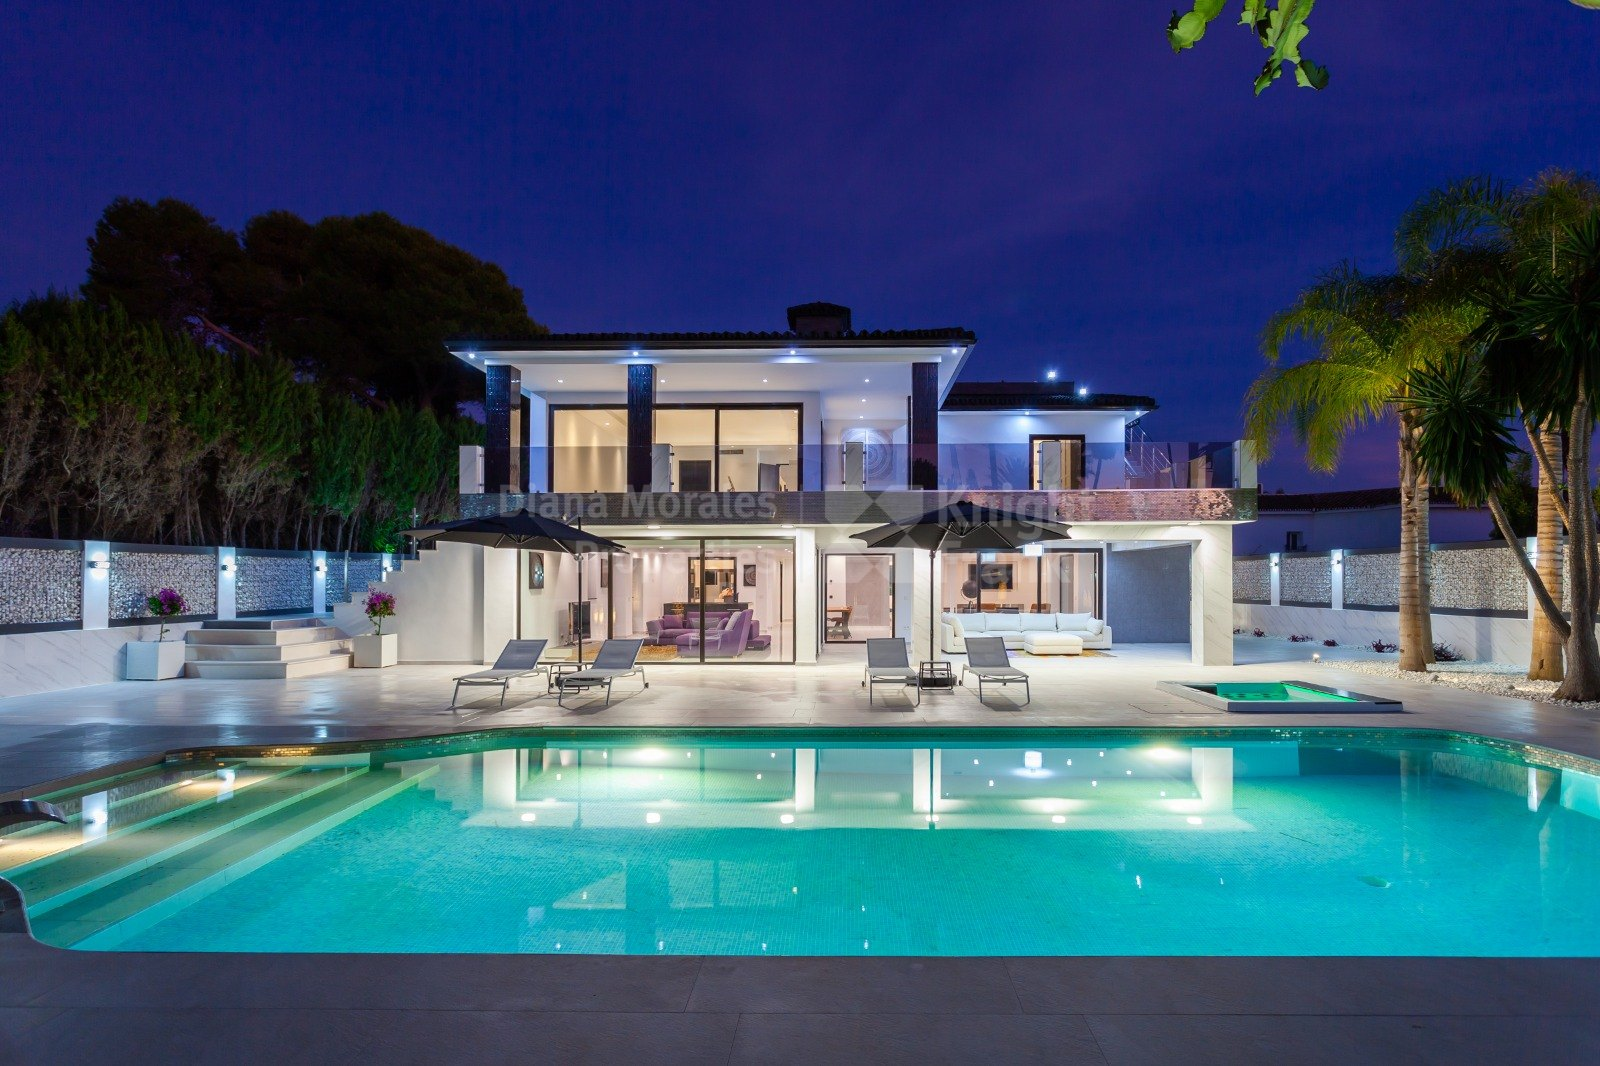 Los Monteros, Villa for sale